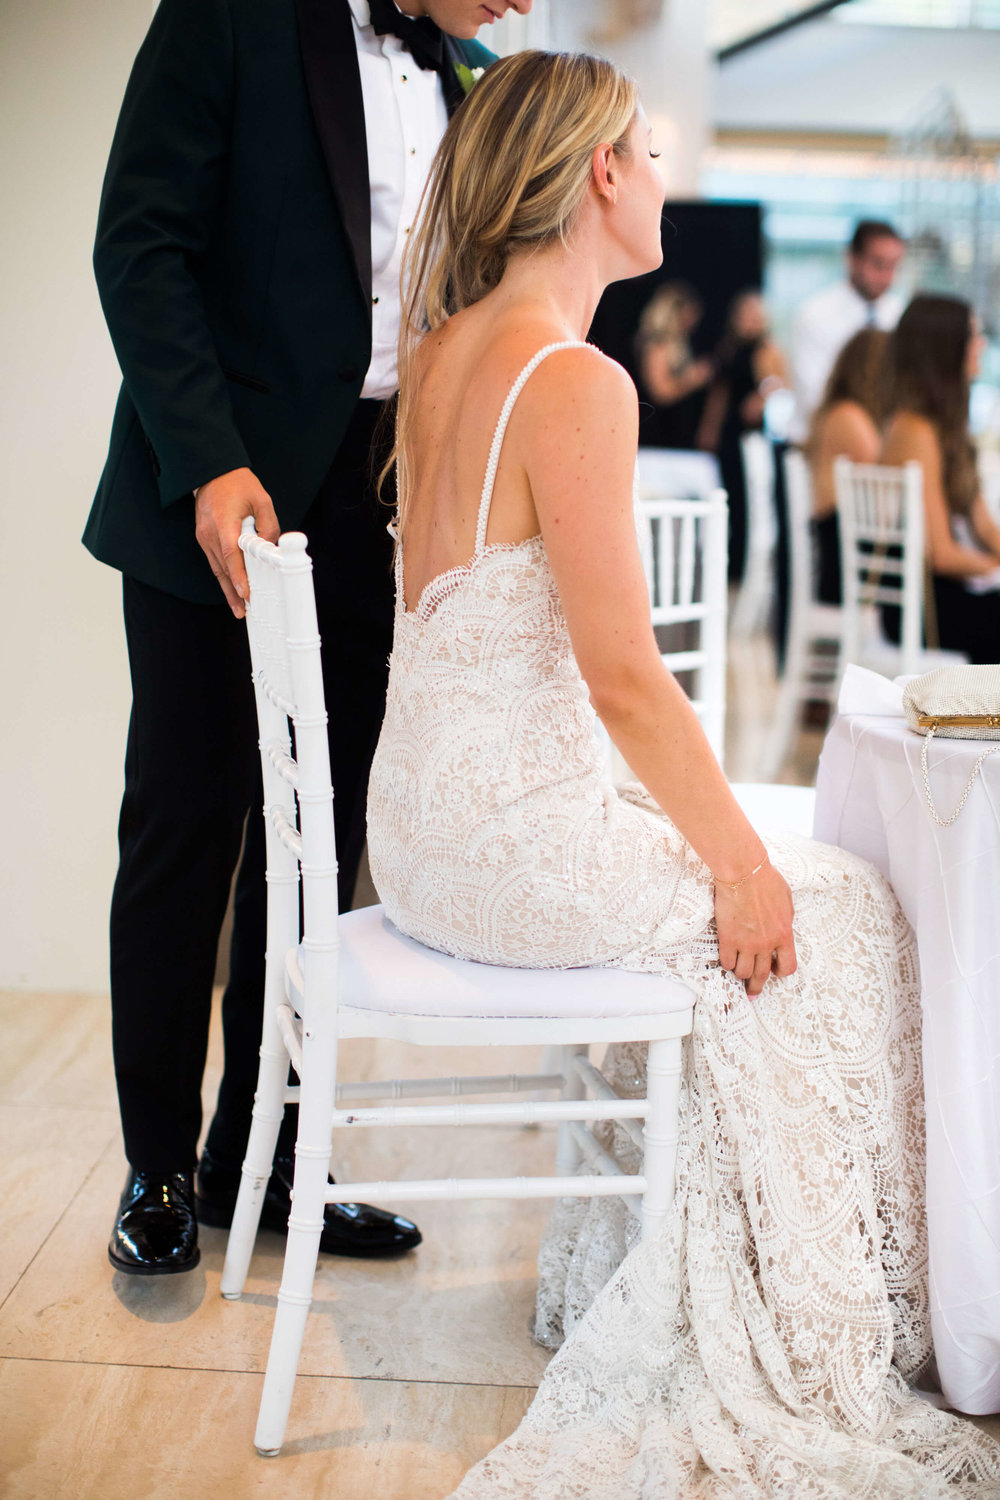 groom pushing bride into table with chair chiavari | Minnesota wedding photographer Studio KH wedding dress details | wedding blog | Sixpence Events 70 Ways to Photograph Your Wedding Dress.jpg